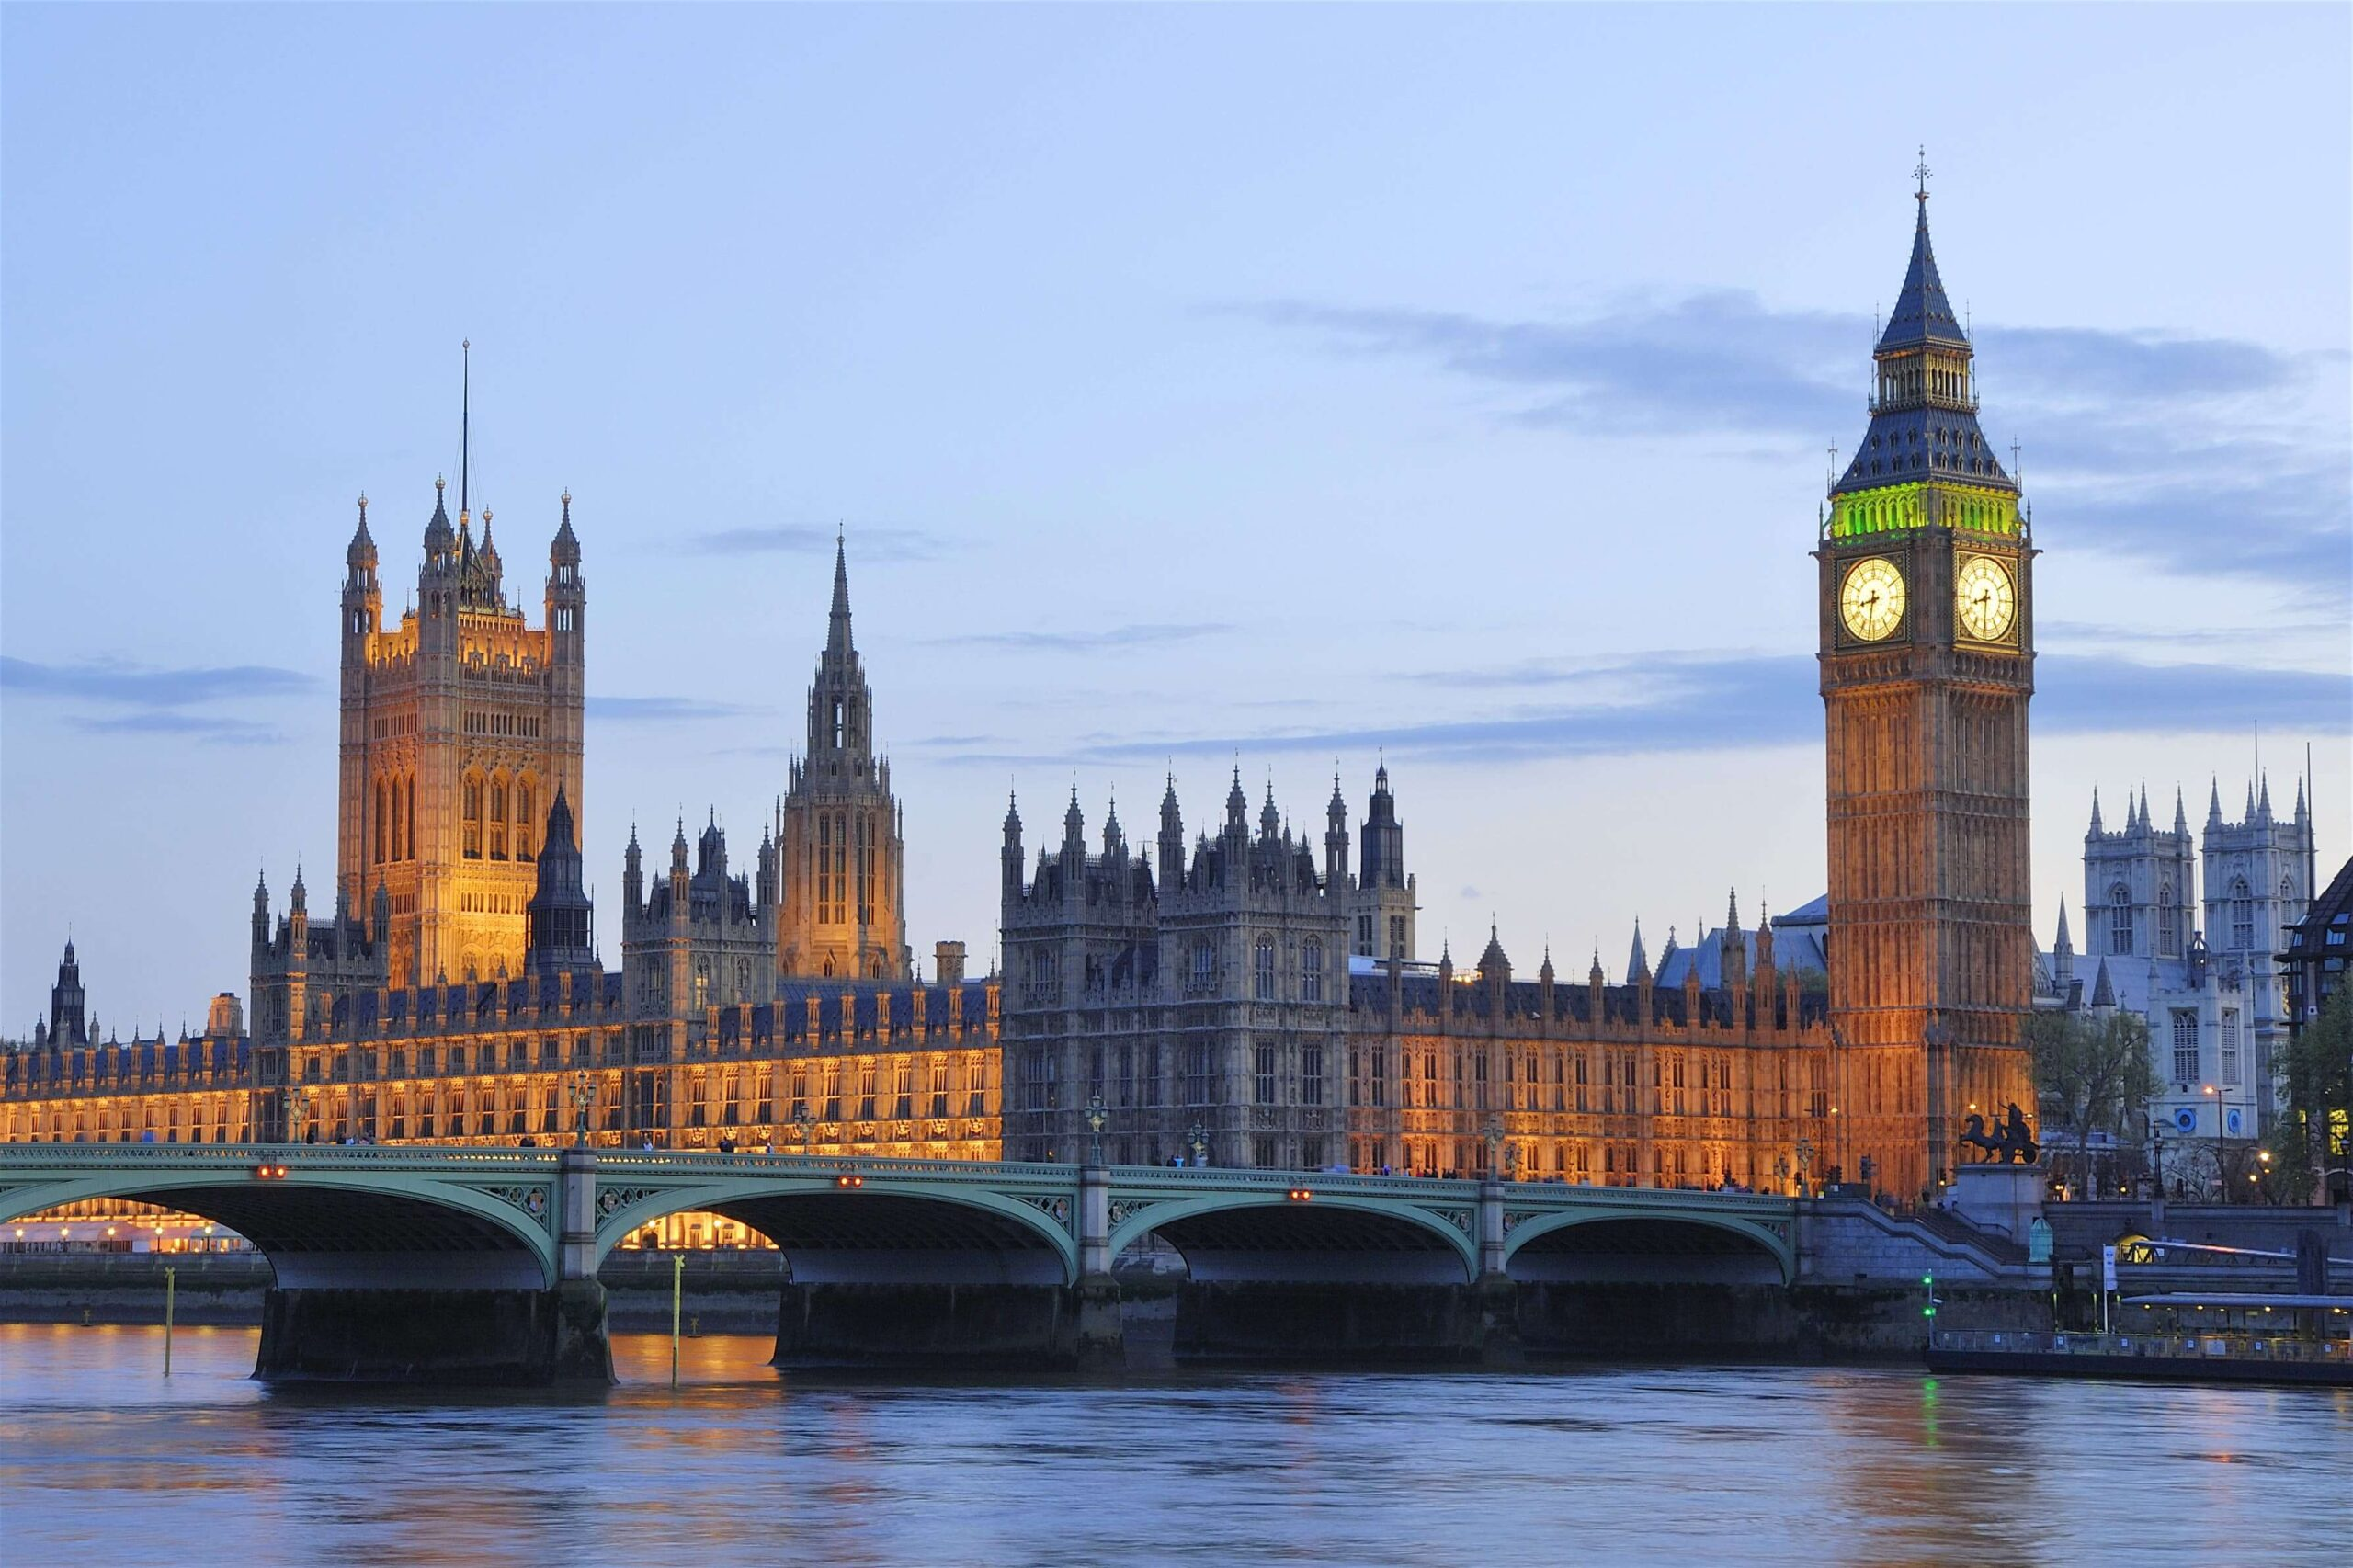 Spend EID UL ADHA in UK Holiday Travel & Tour Package